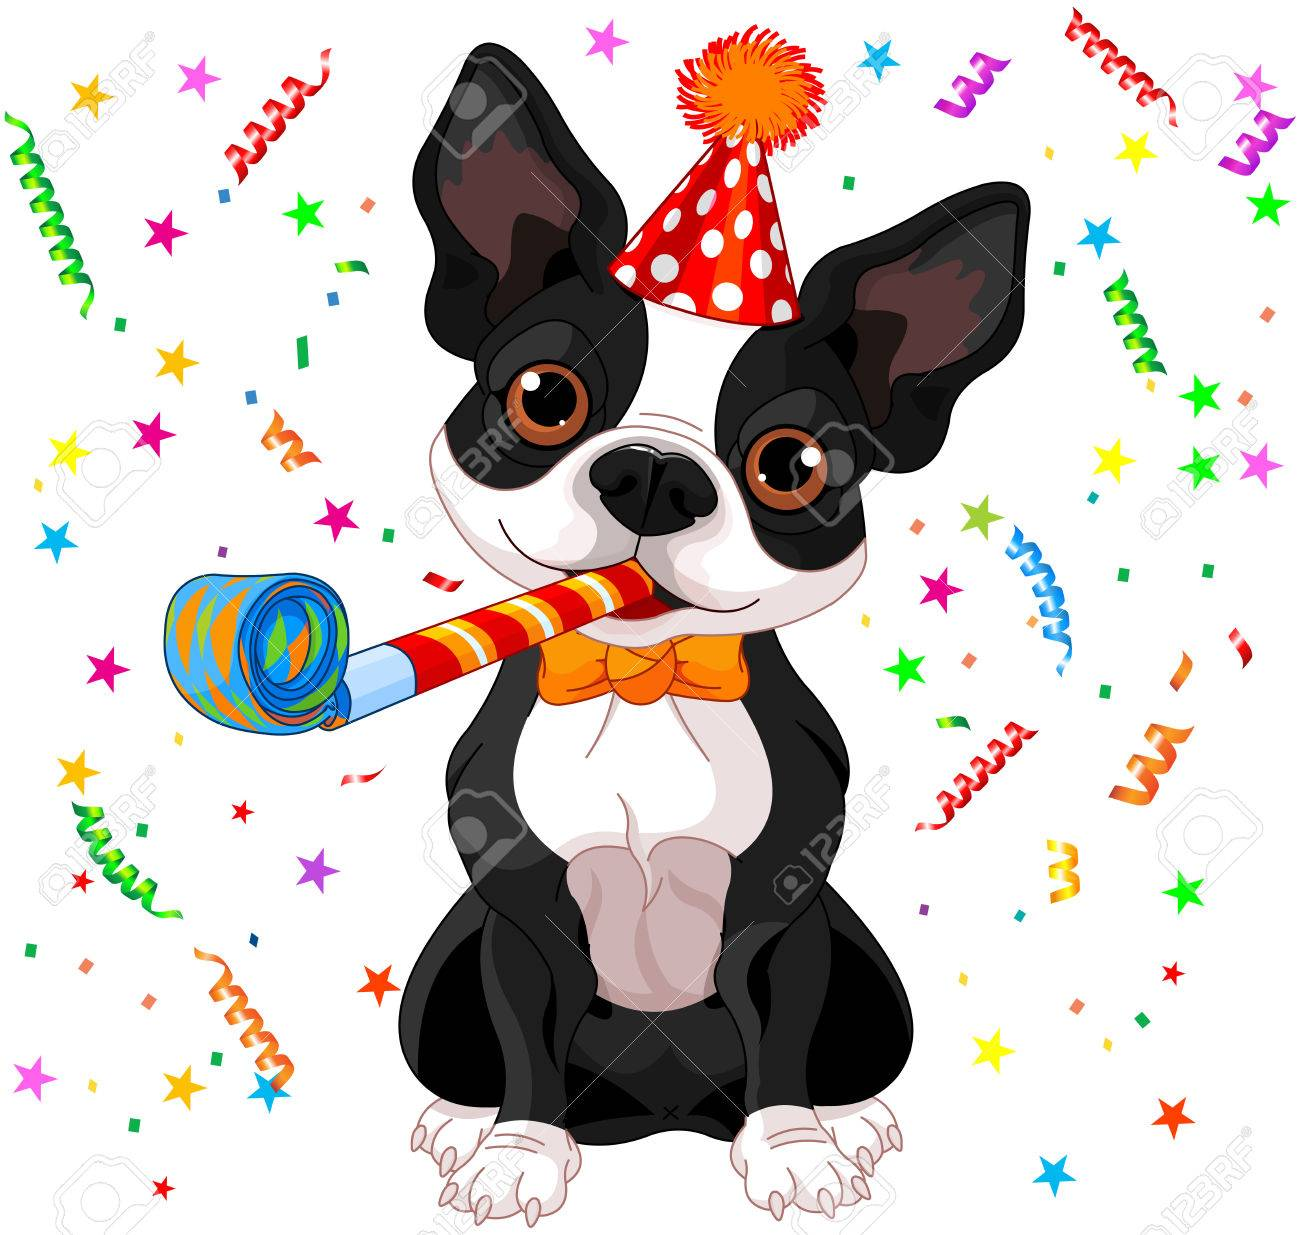 Adopter un vieux chien et chiot (au même moment) 35588778-illustration-of-cute-boston-terrier-celebrating